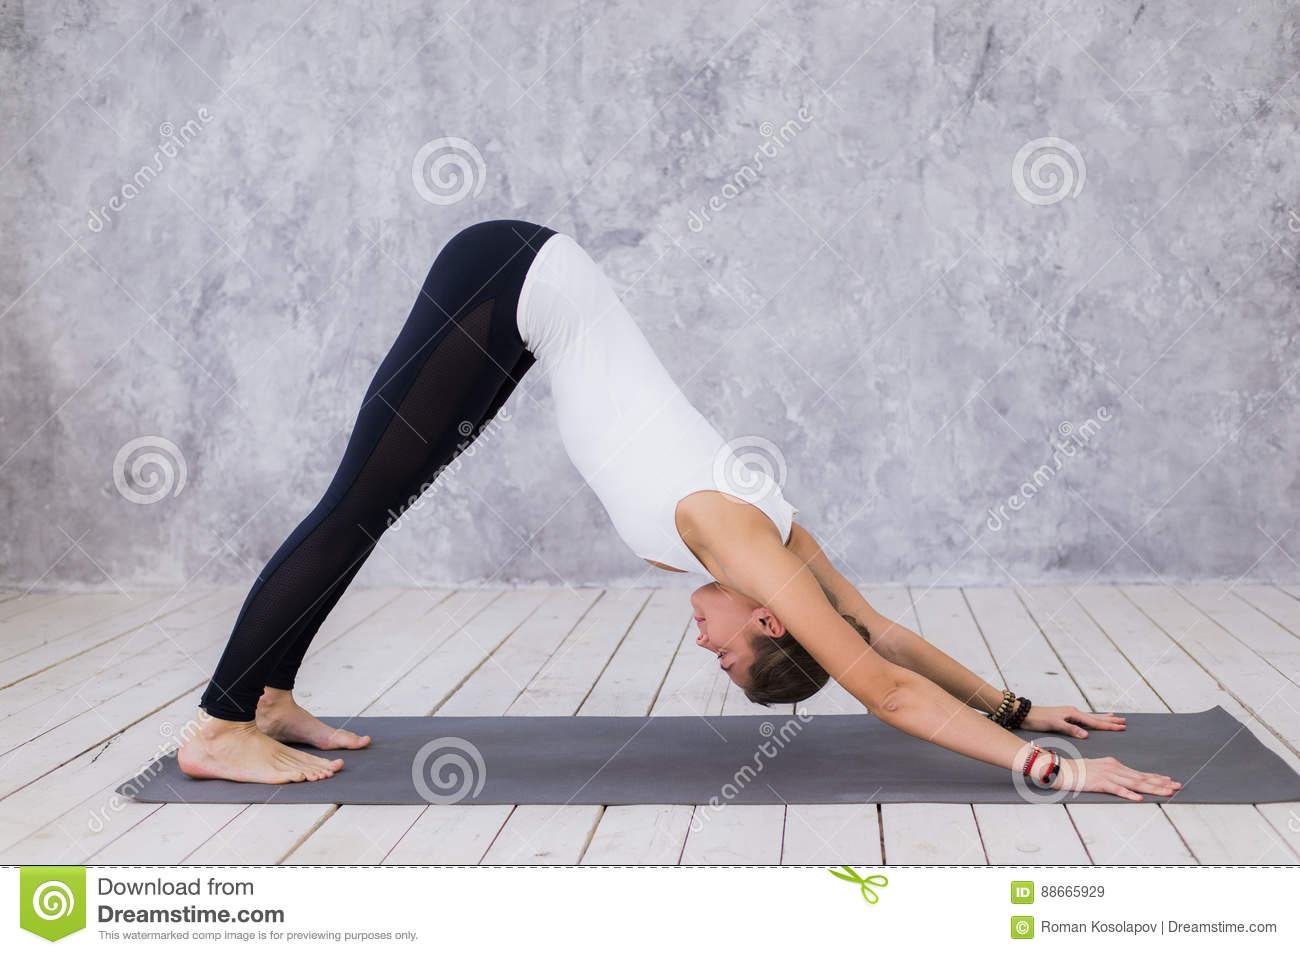 Beautiful young woman working out indoors, doing yoga exercise in the room with white walls, downward facing dog pose